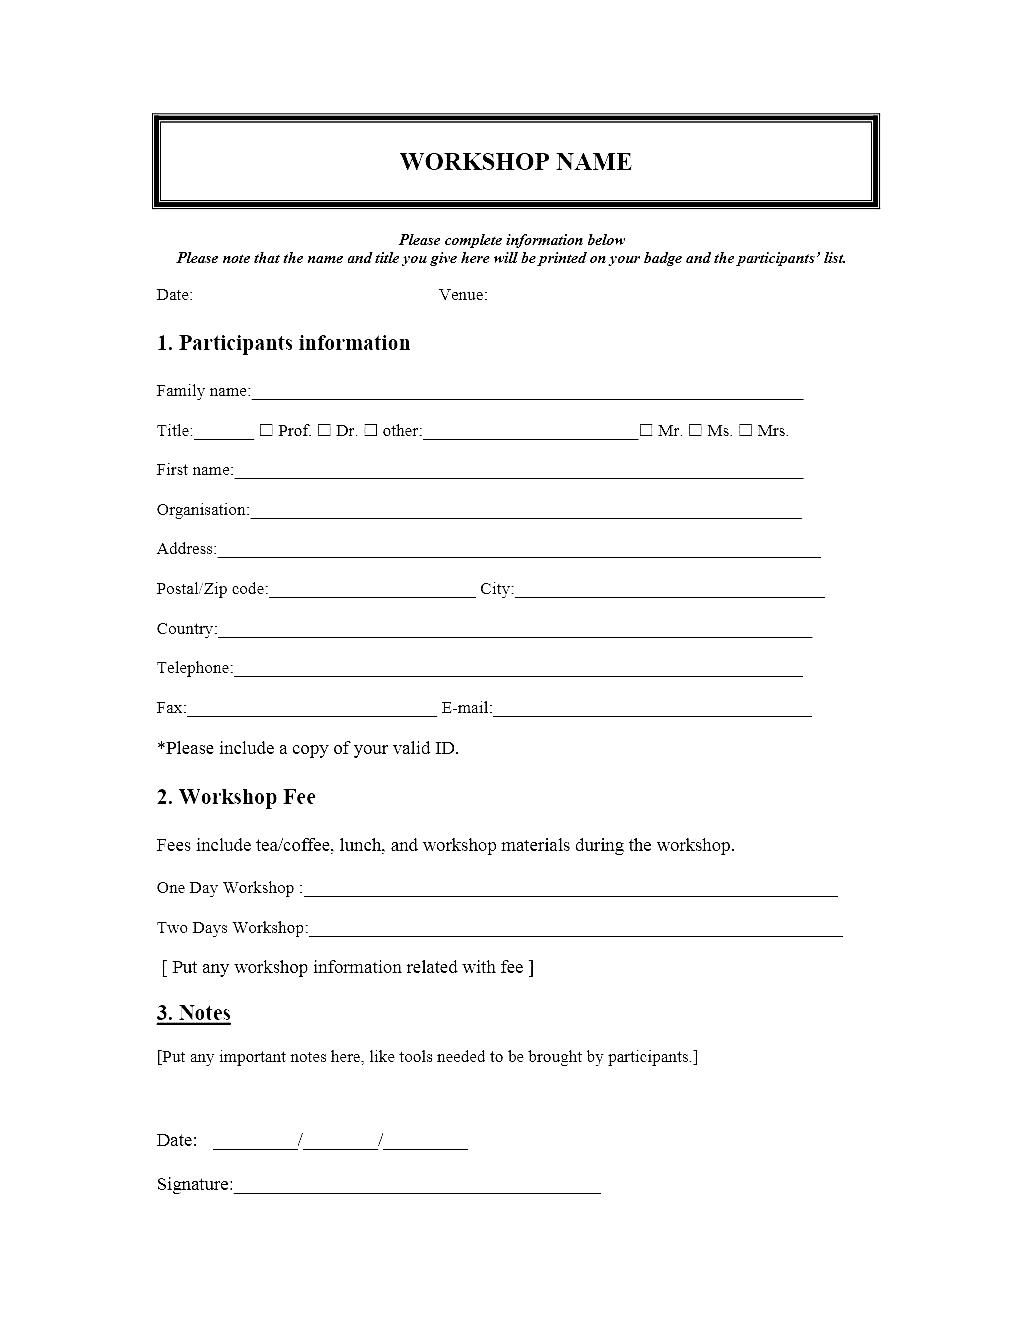 Event Registration Form Template Microsoft Word  Besttemplate